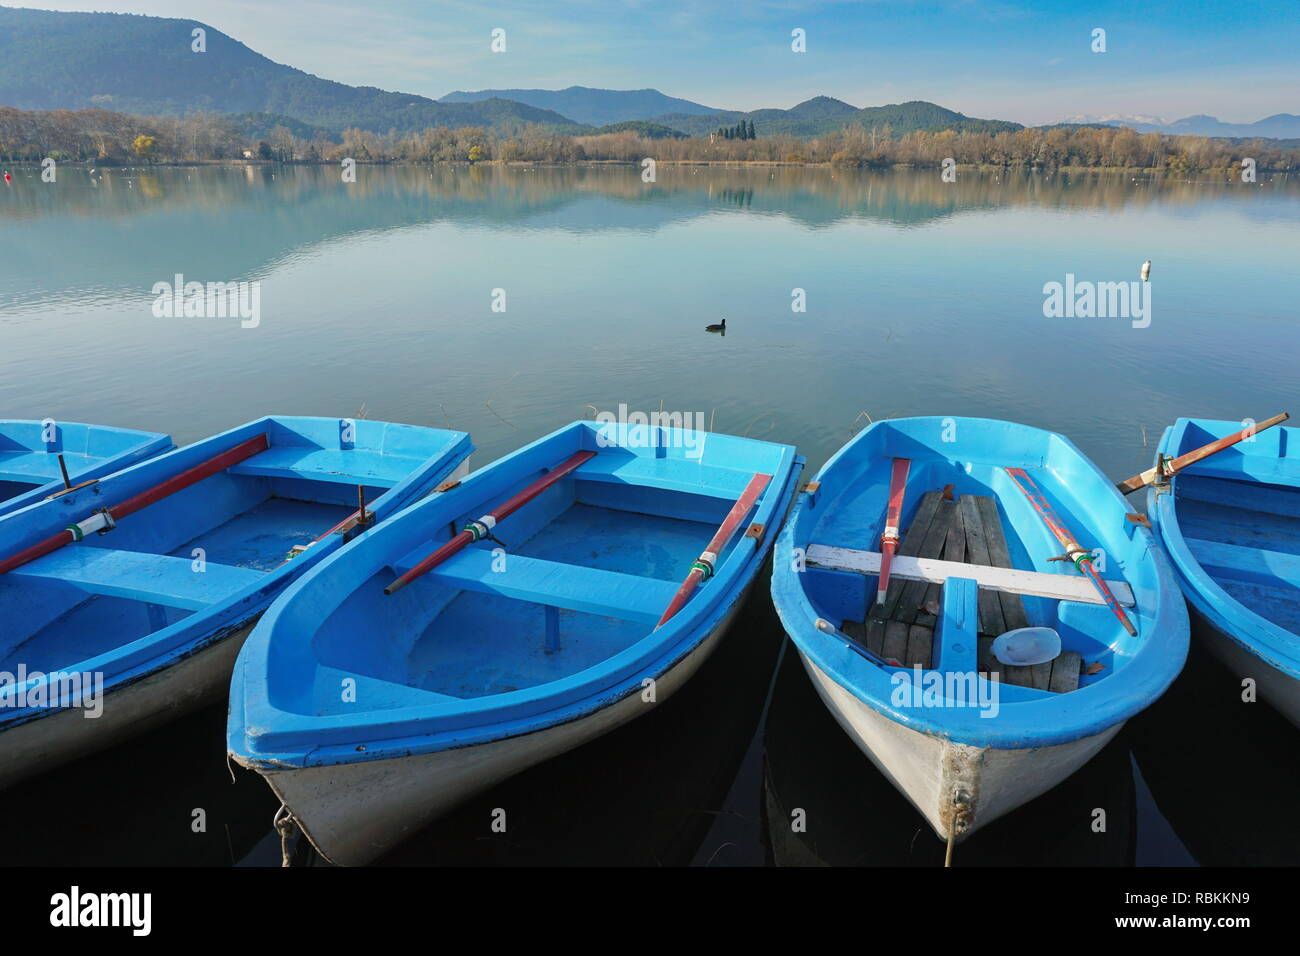 The lake of Banyoles with small boats in foreground, Province of Girona, Catalonia, Spain Stock Photo